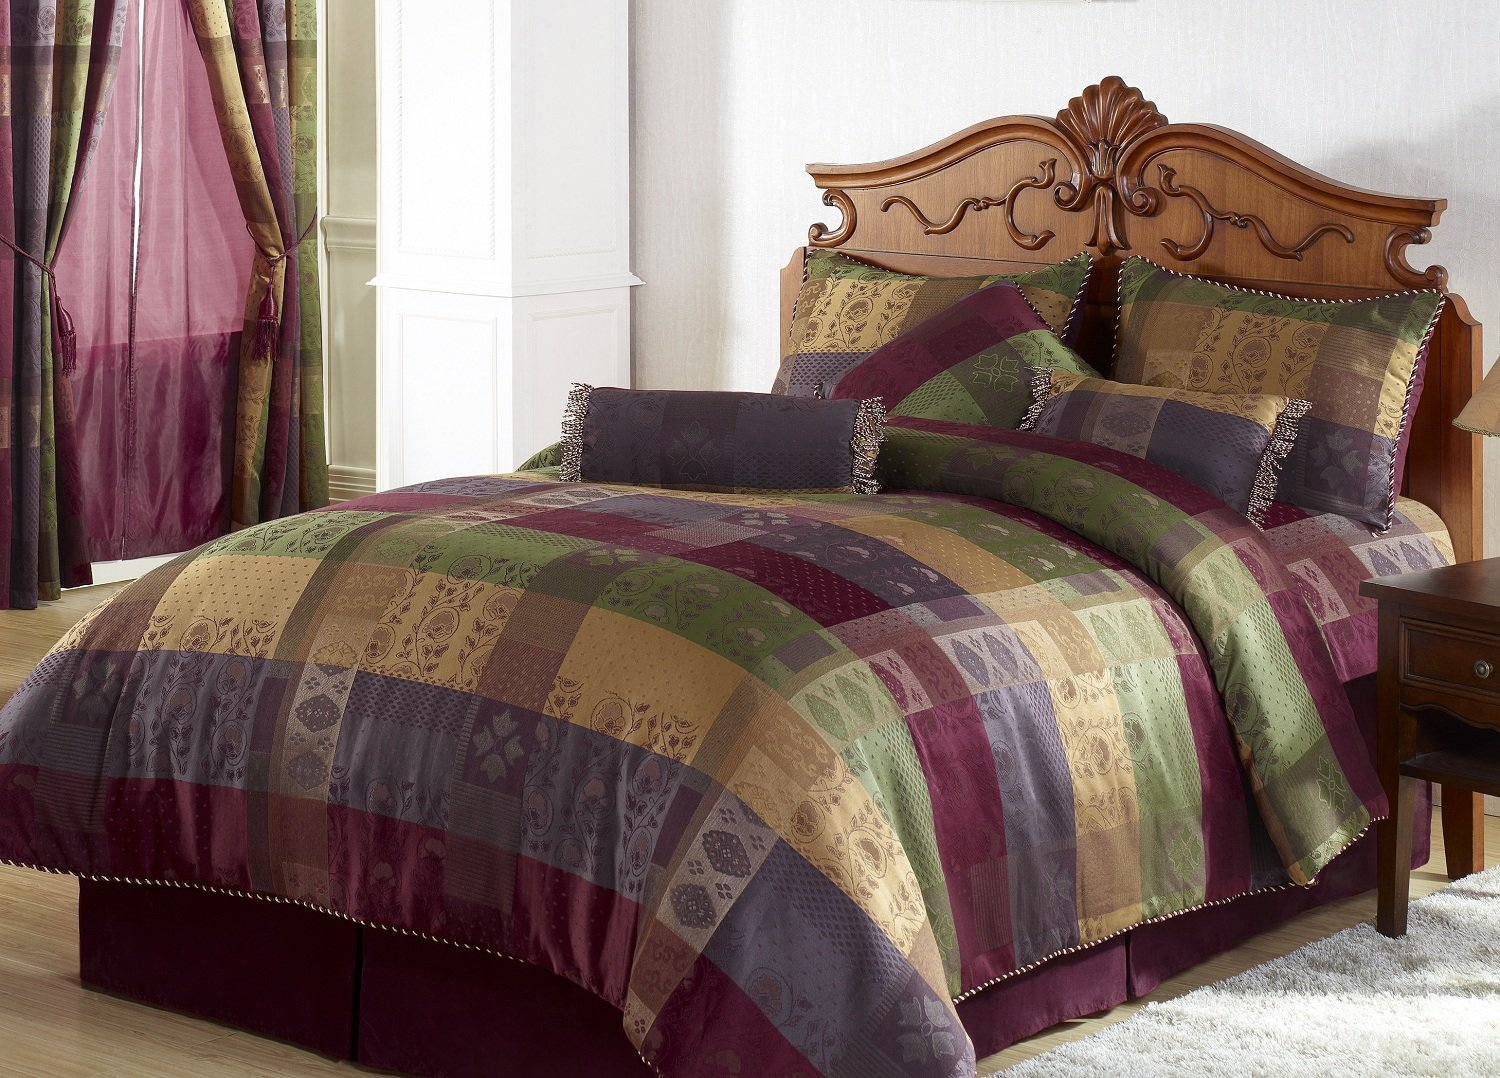 7-Piece Bedding Set, California King, Multi Color